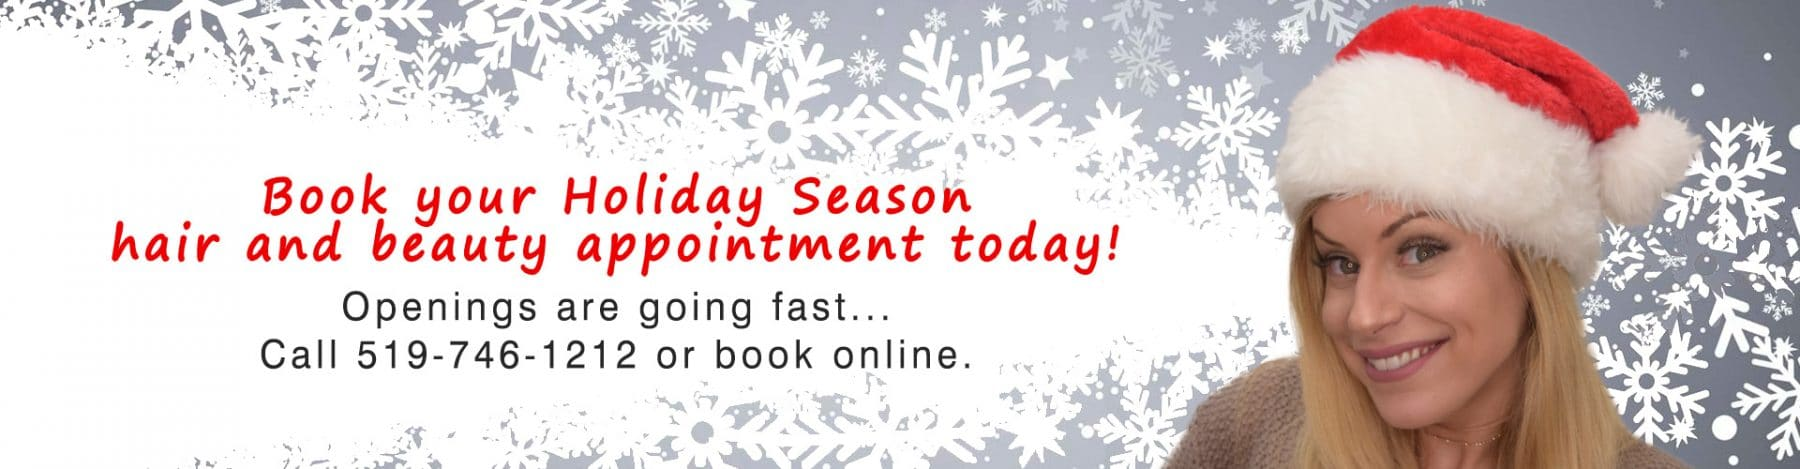 book your christmas 2018 appointment now